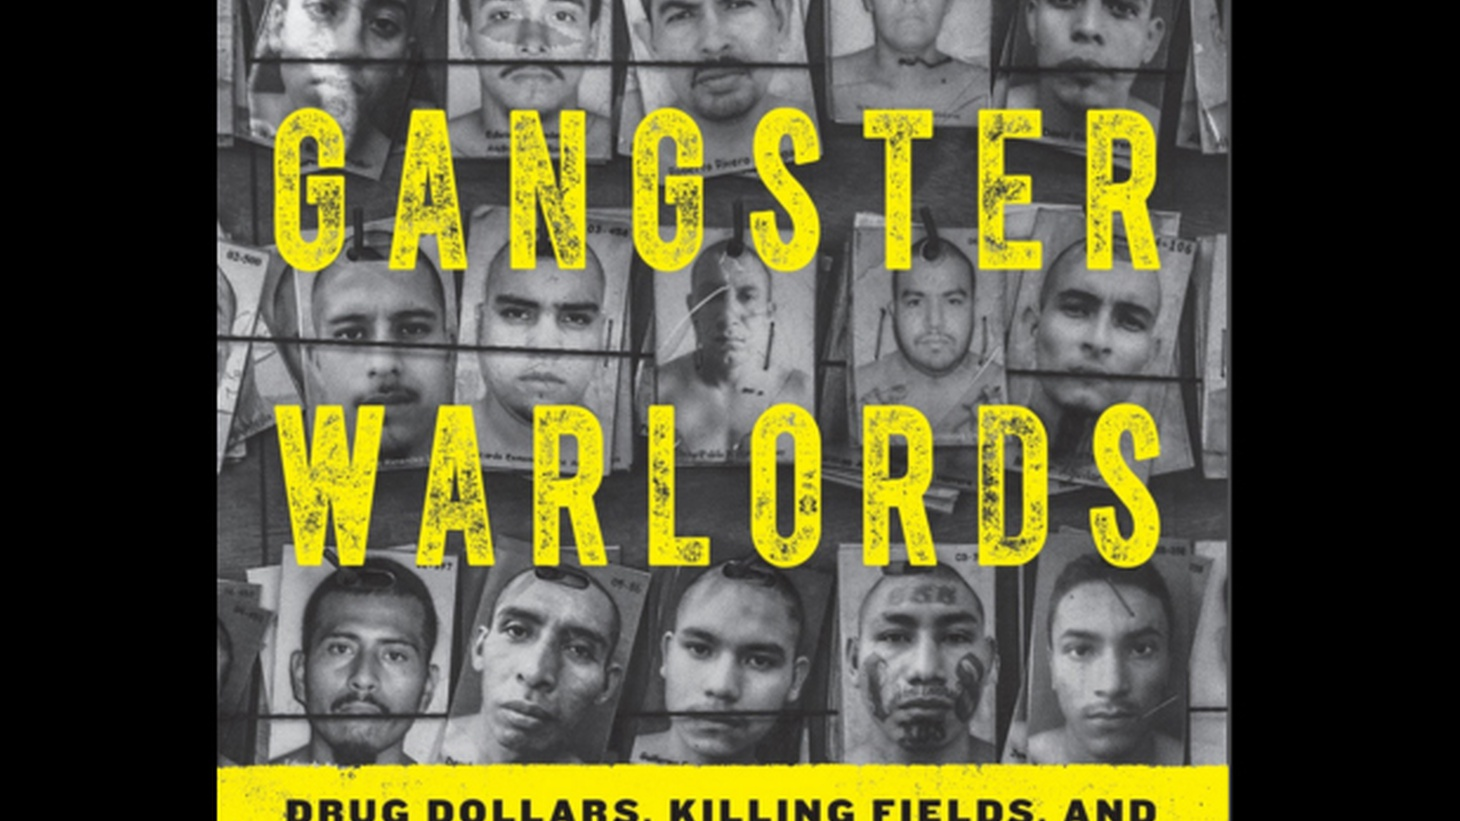 """Gangster warlords are now dominant players in Mexico and other countries south of the border. """"The collapse of military dictatorships and guerrilla armies left stockpiles of weapons and soldiers searching for new payrolls."""""""